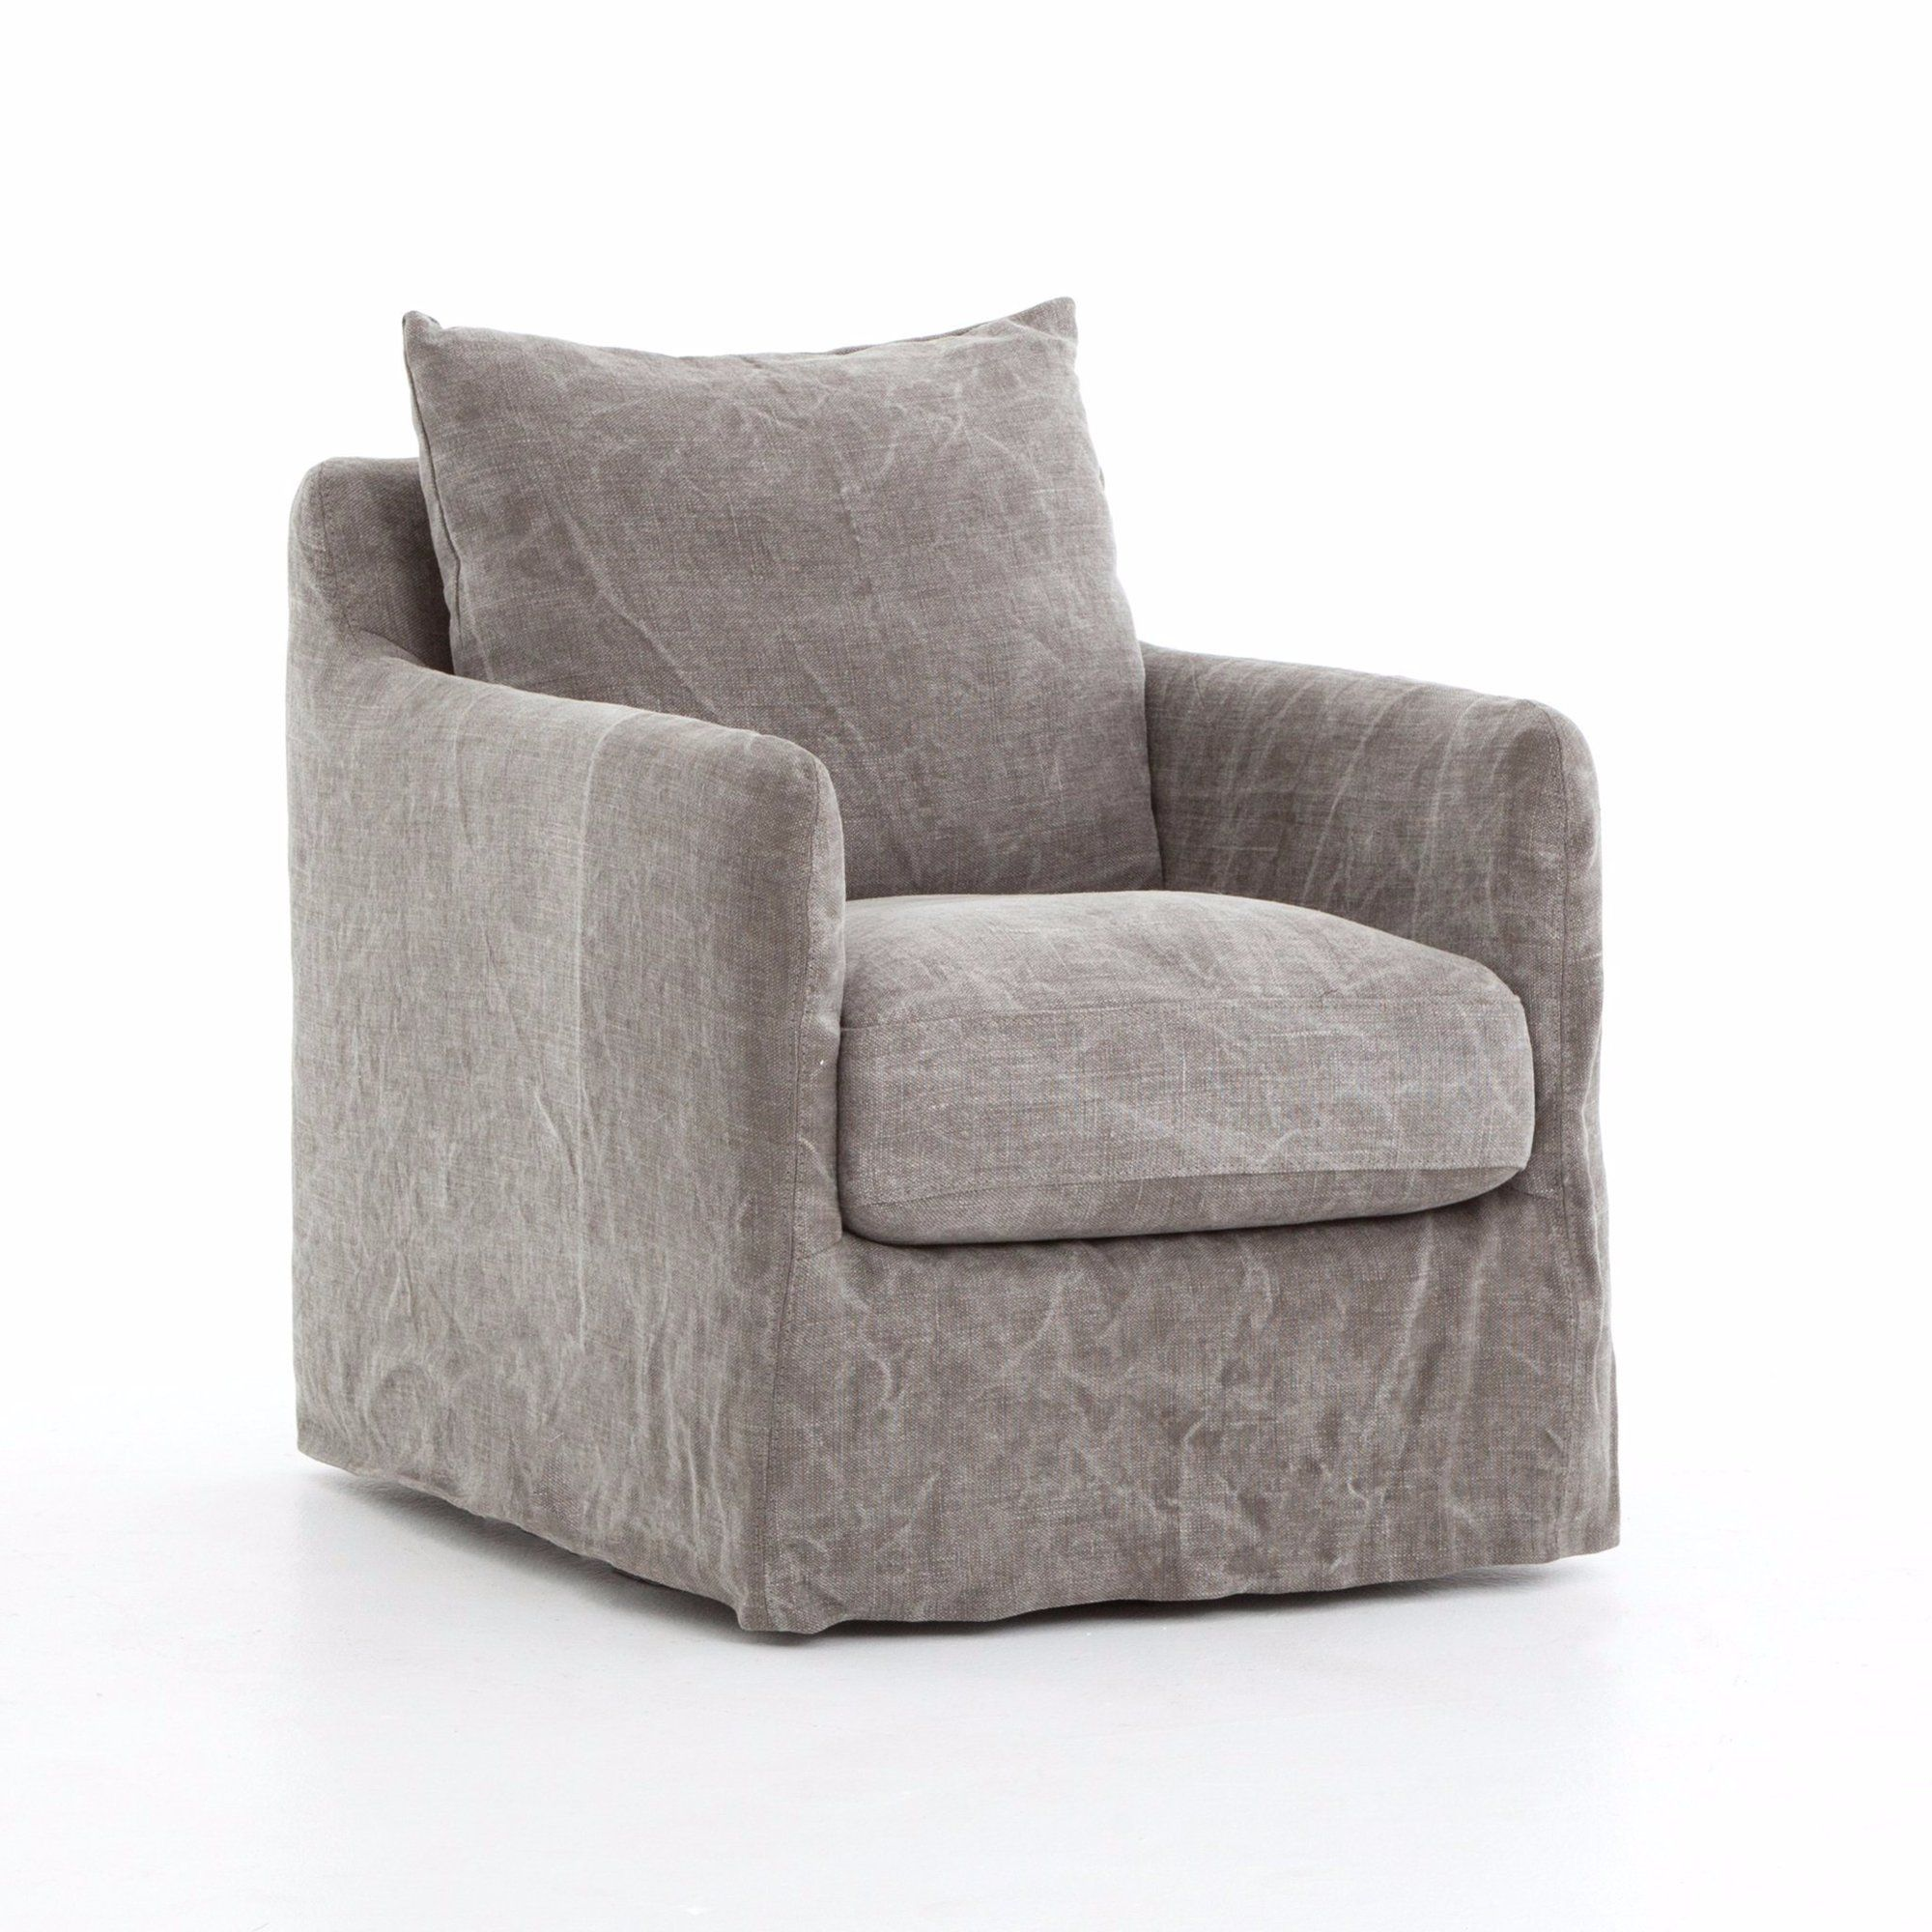 Swivel Chair1422057 (With images) Swivel chair, Swivel